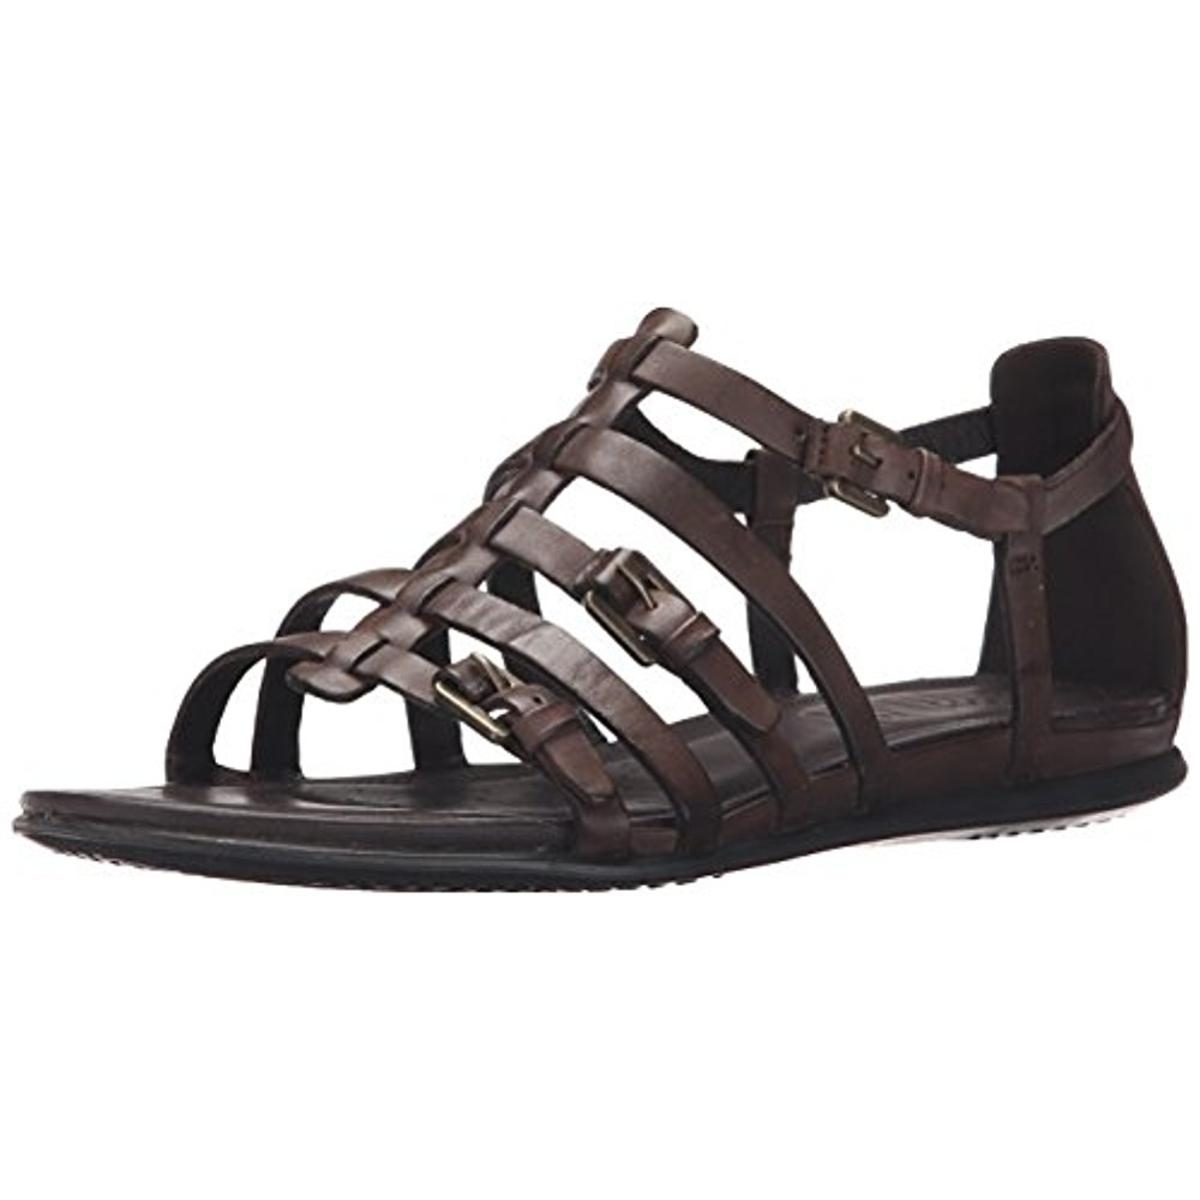 ECCO Womens Touch Leather T-Strap Gladiator Sandals by Ecco